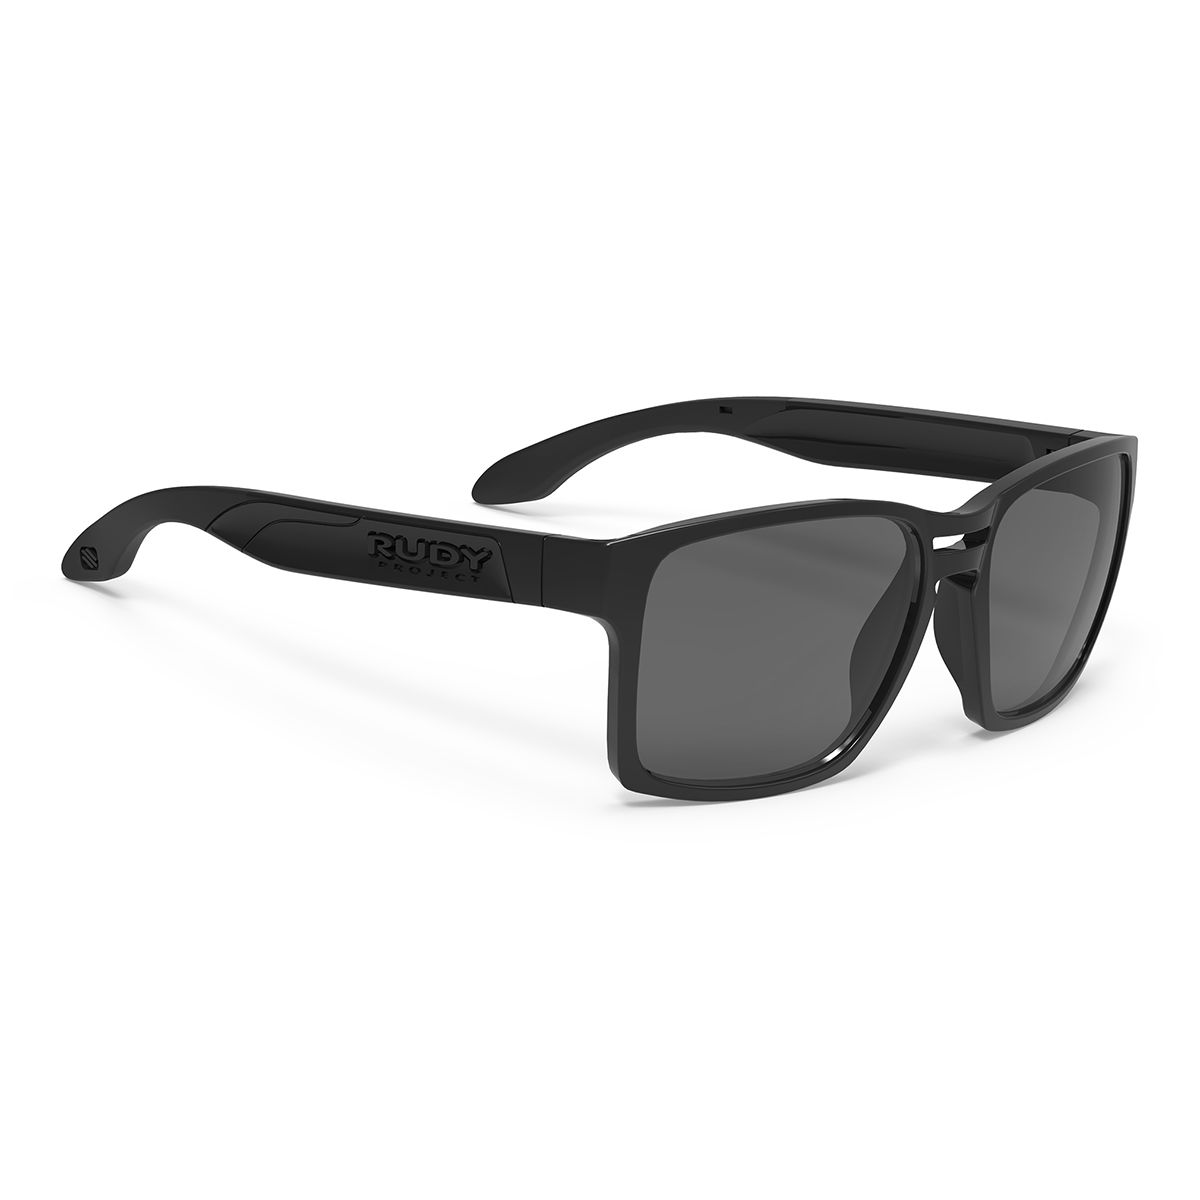 SPINAIR 57 sports glasses